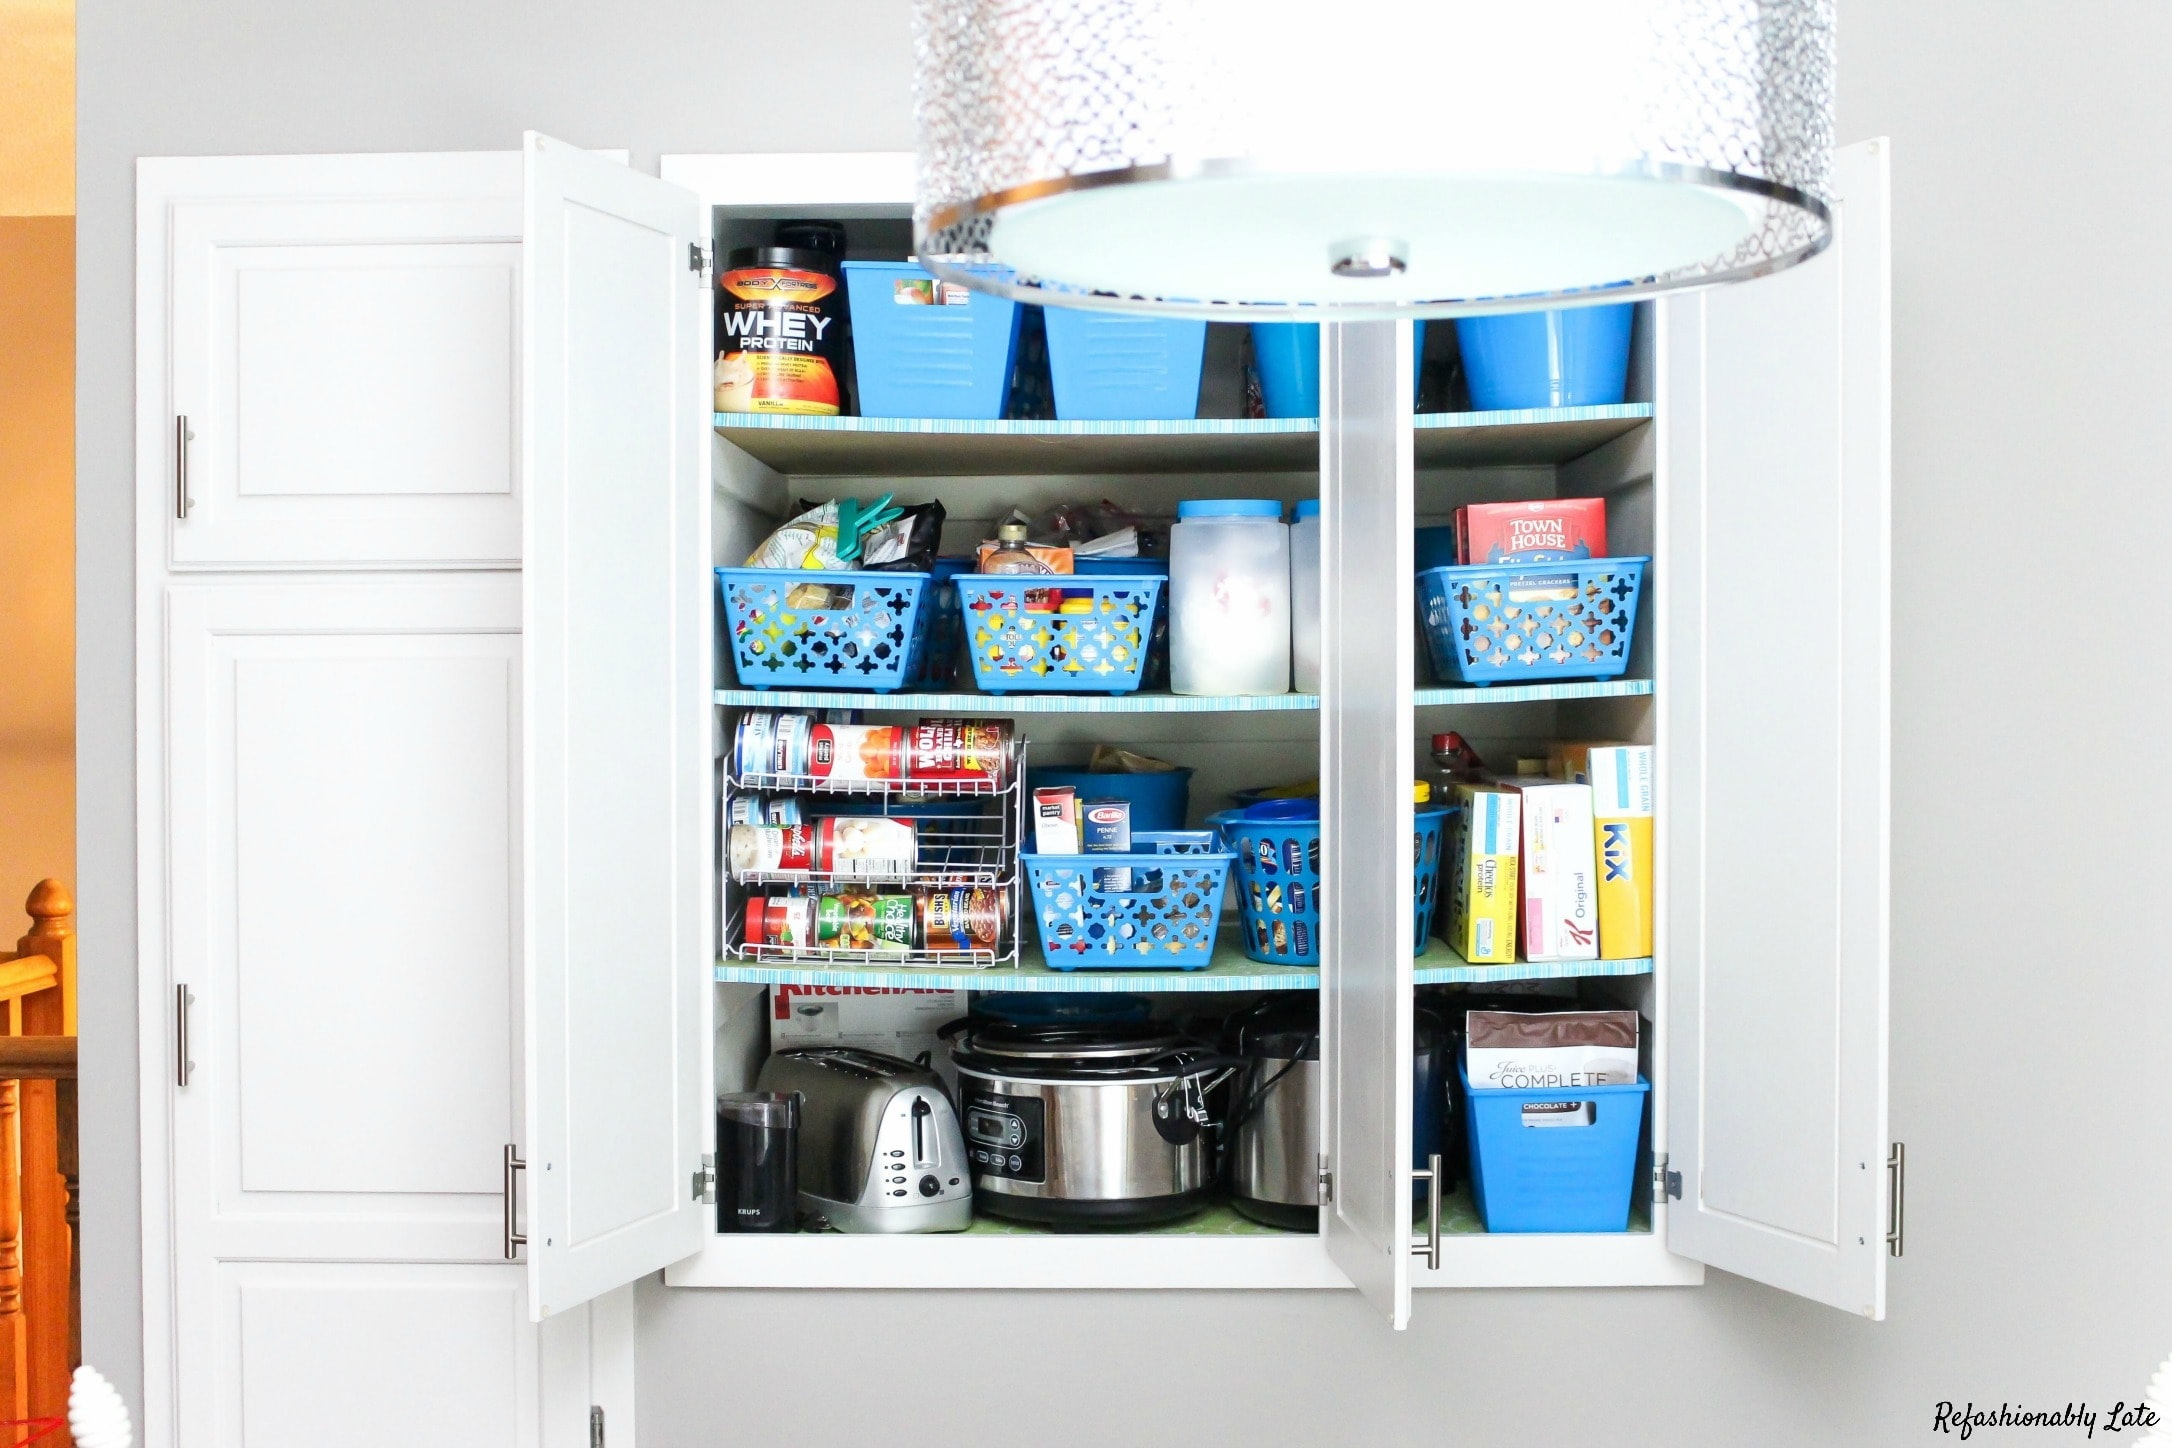 Pantry Organization - Refashionably Late